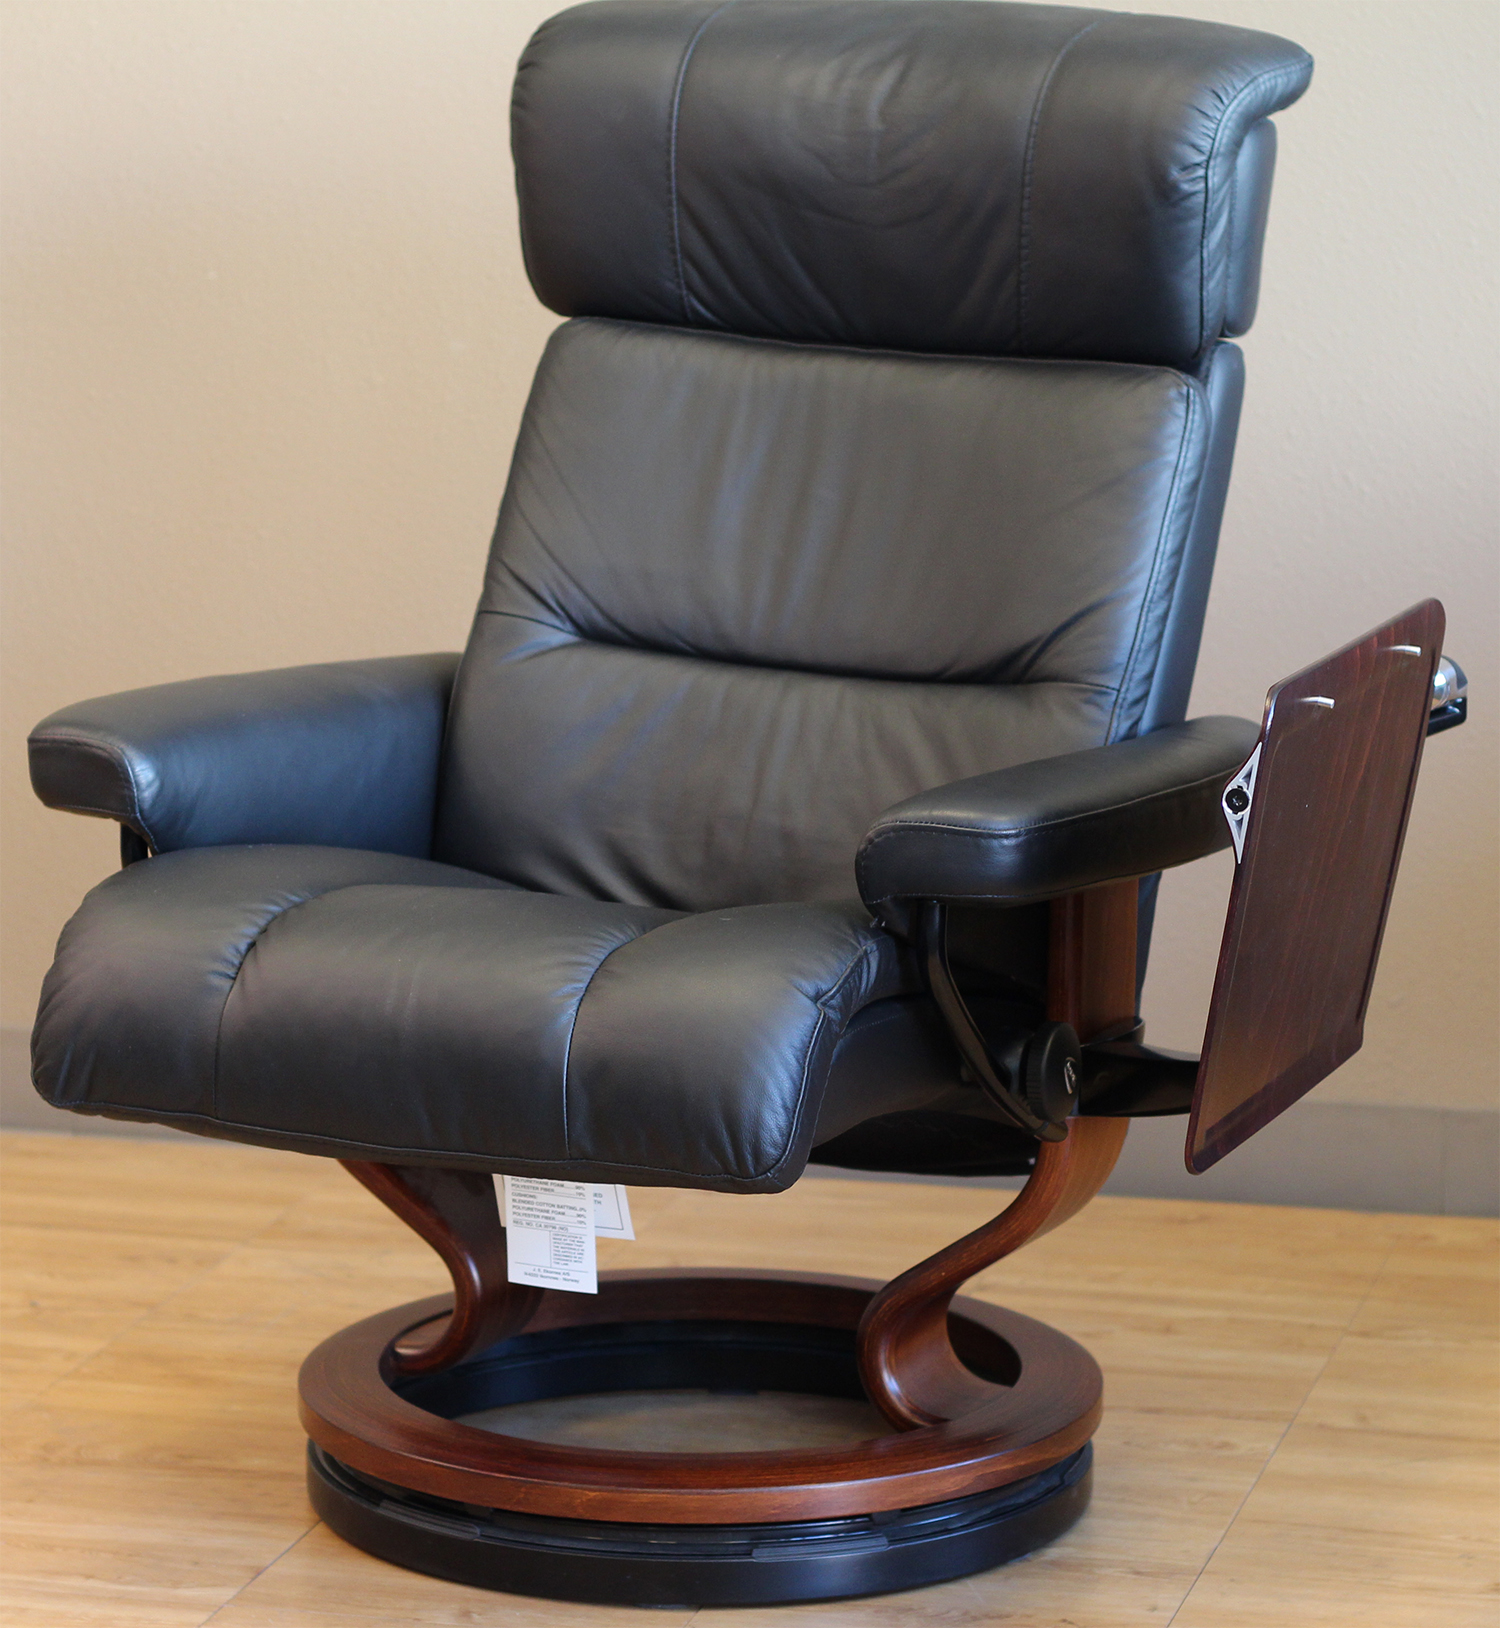 stressless recliner elevator ring for ekornes chairs ekornes stressless recliners stressless. Black Bedroom Furniture Sets. Home Design Ideas